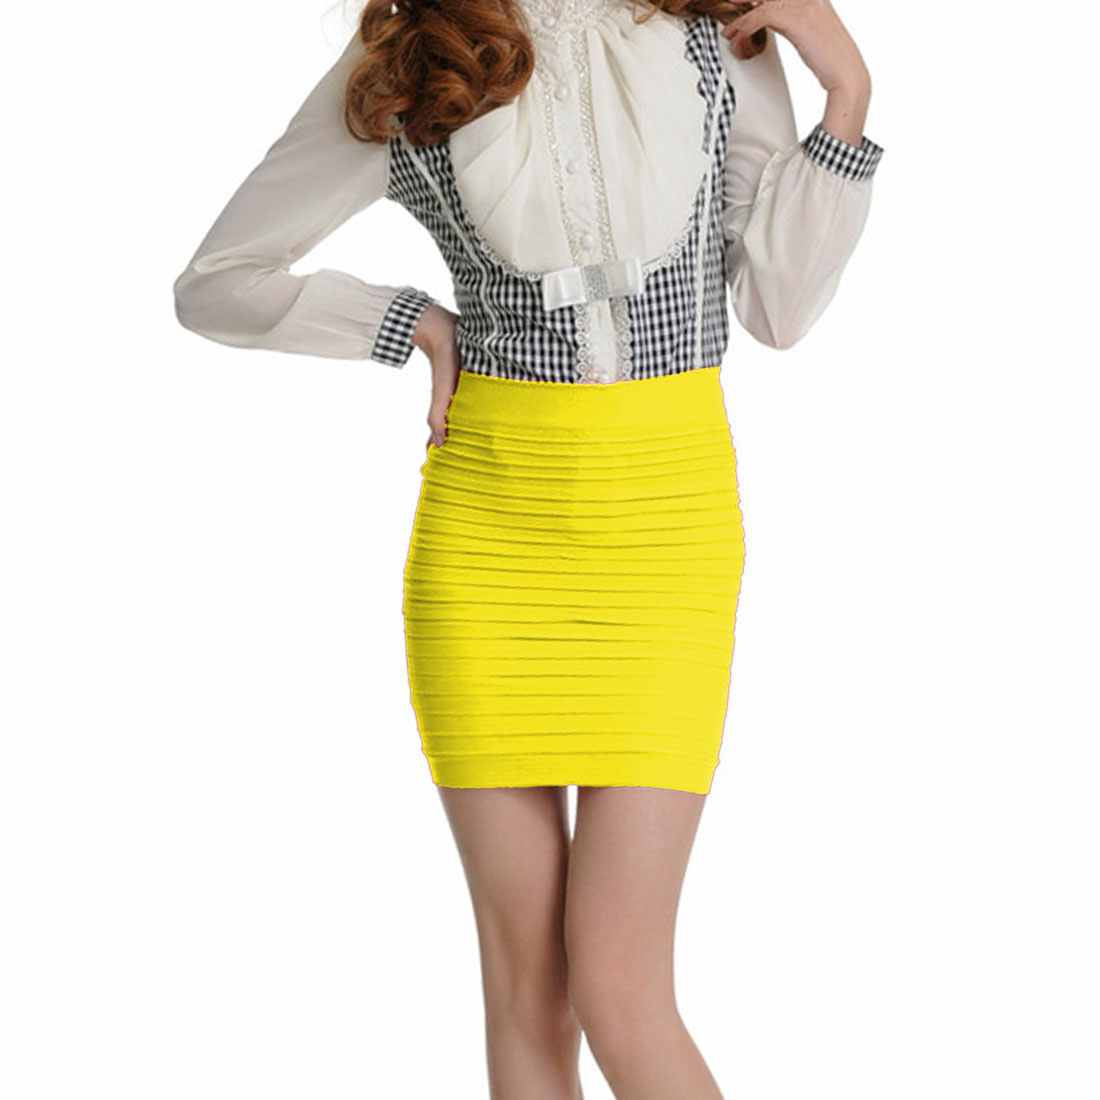 Ladies Pure Yellow Elastic Waist Hip Tight Mini Skirt XS